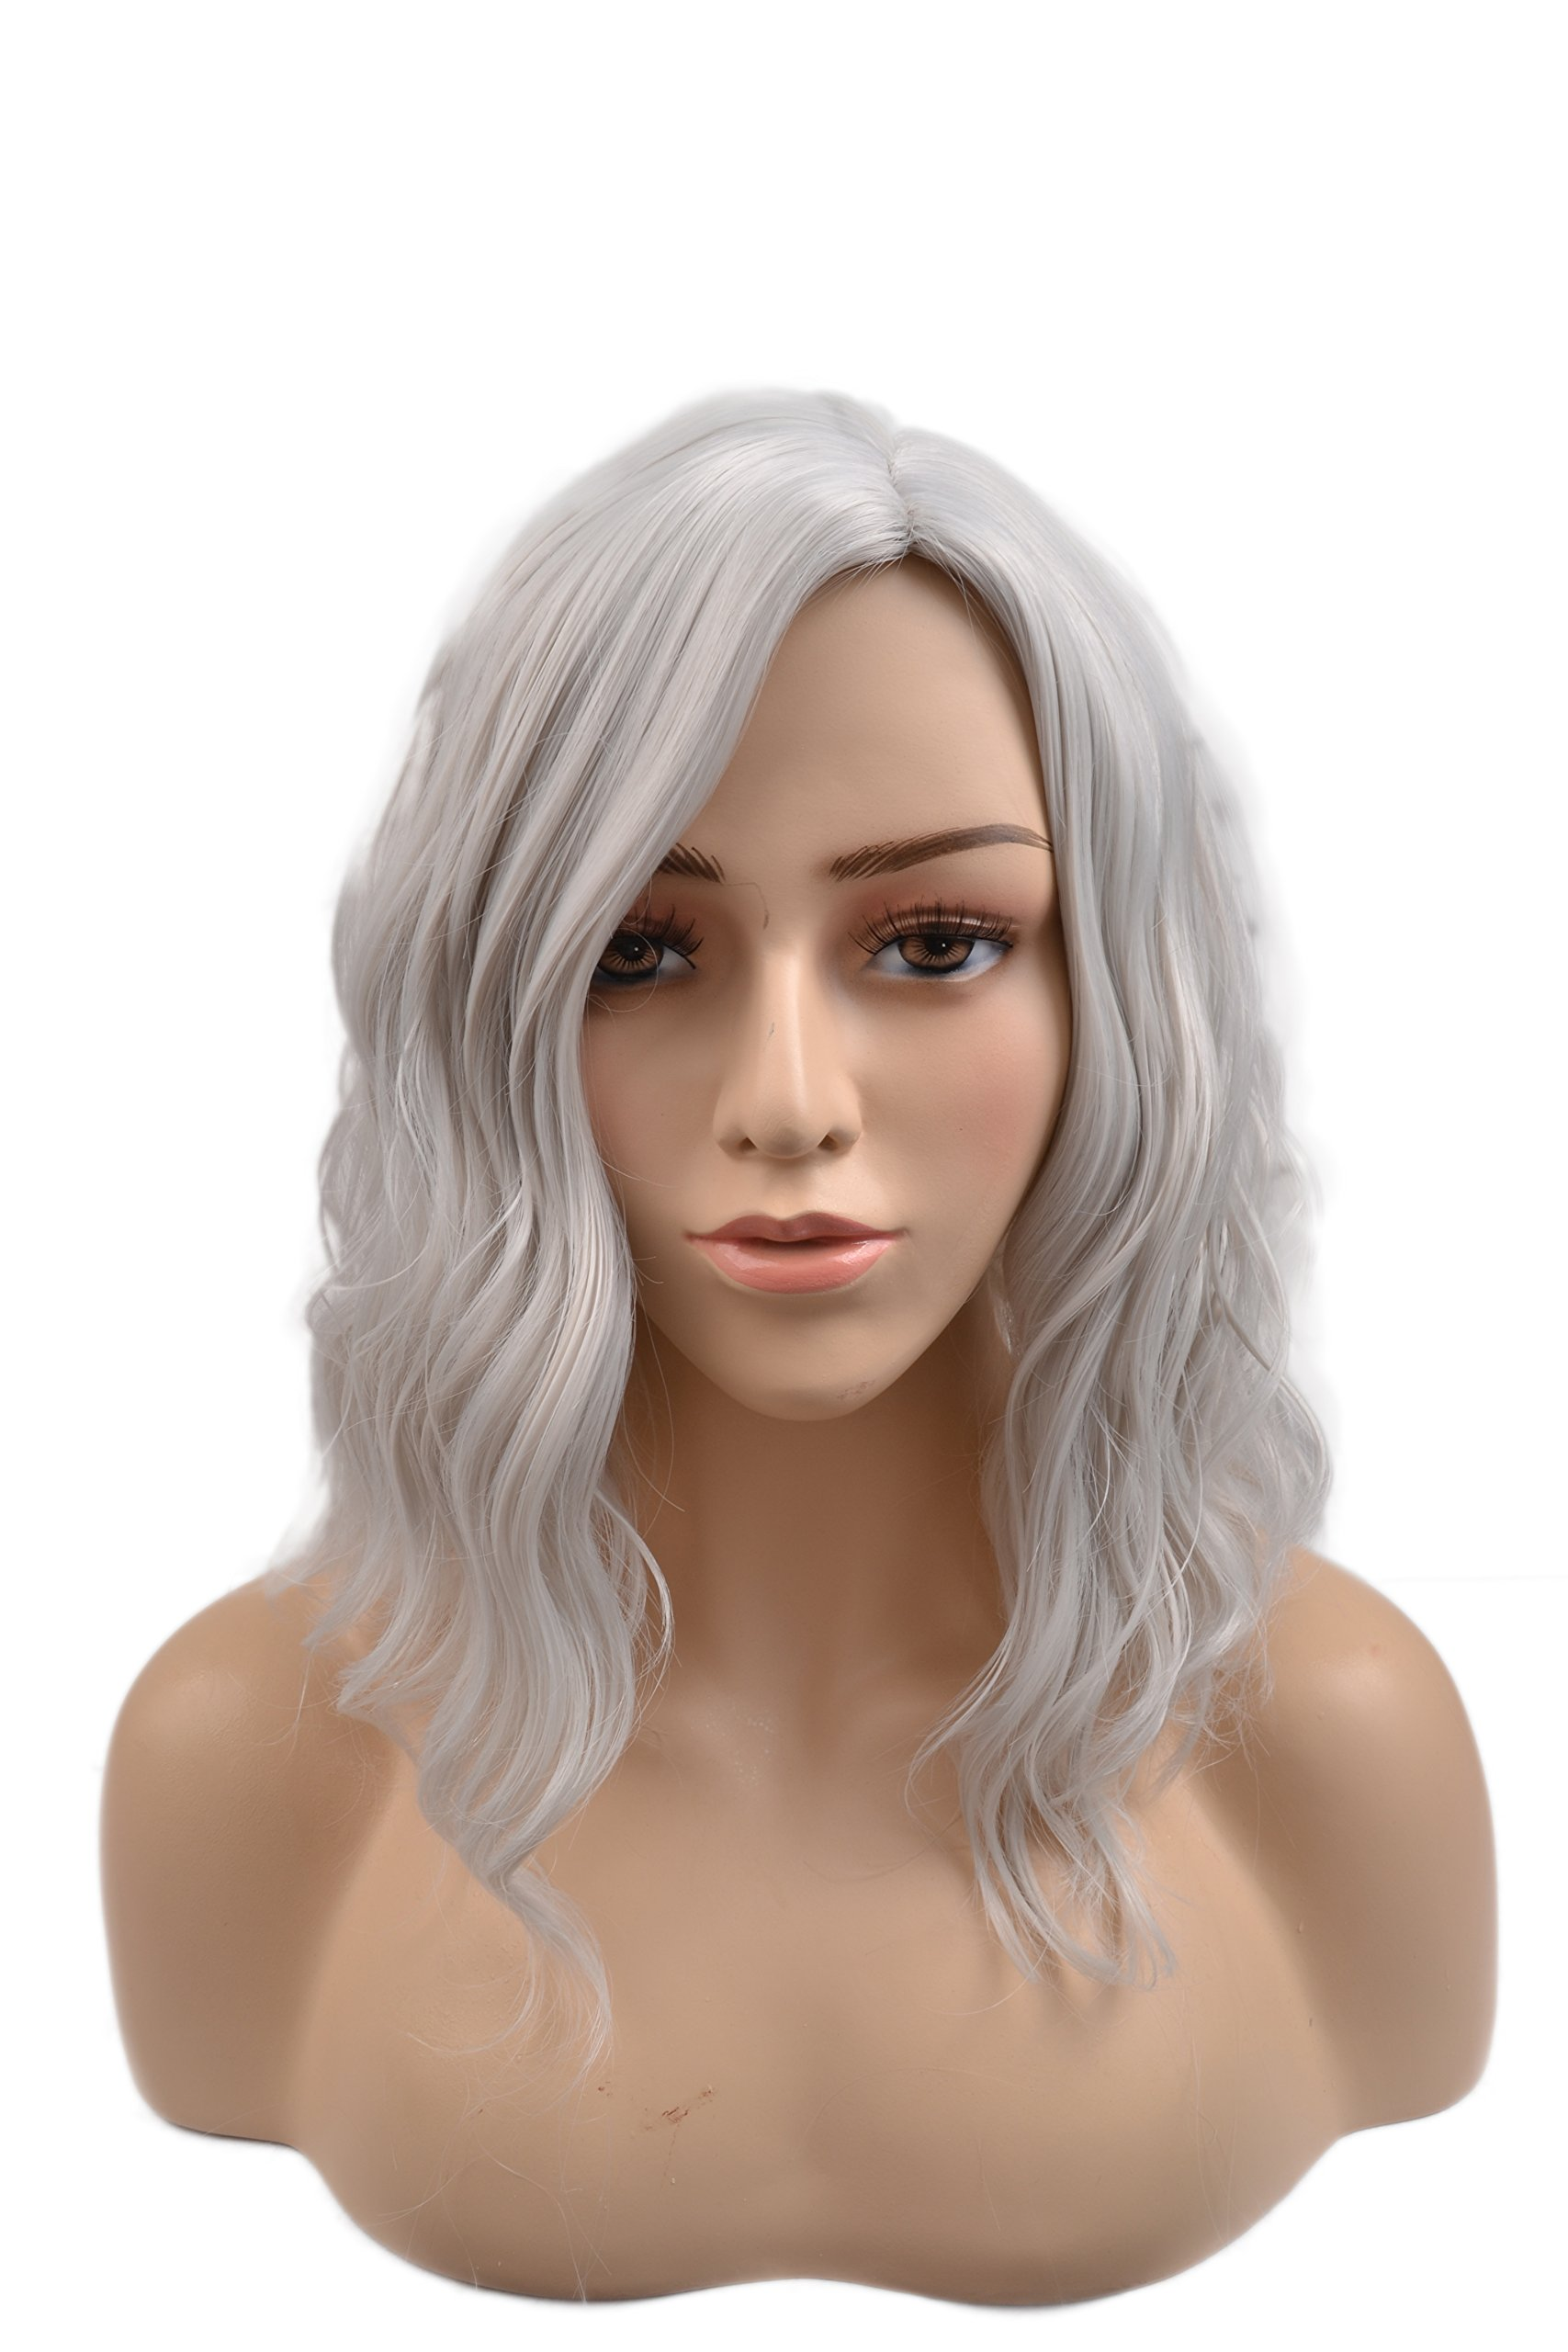 Black Clearance Women Long Wavy Human Hair for Black Women Synthetic Curly Lace Front Full Wigs Cosplay Costume Party Female Side Part Wig